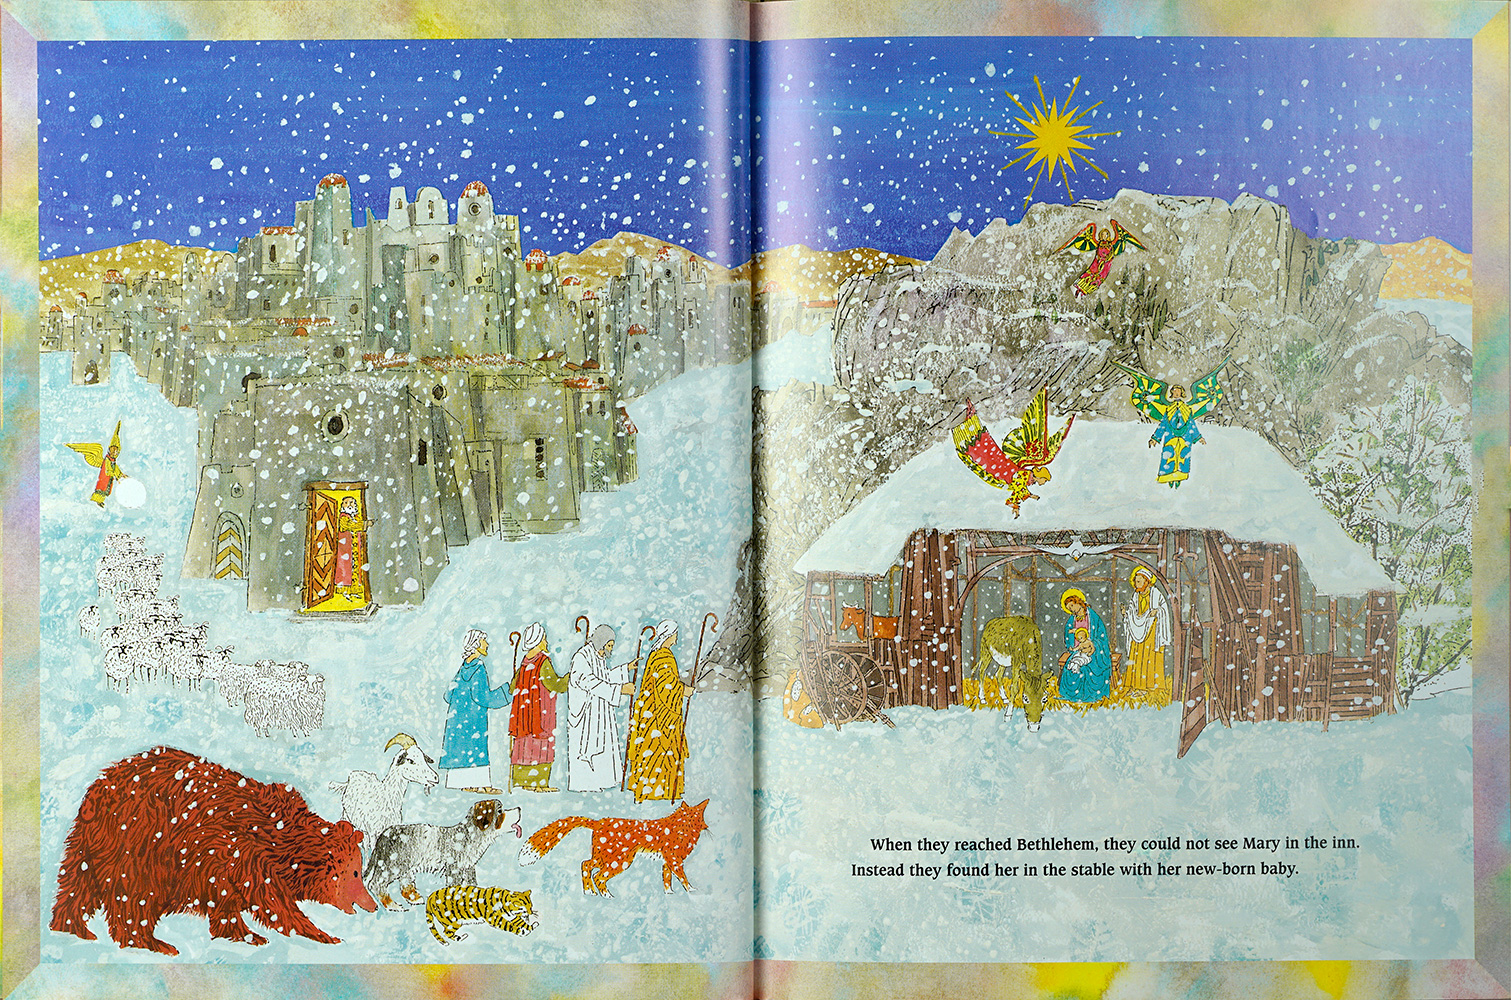 A-Christmas-Journey-book-pages-17-&-18-Brian-Wildsmith.jpg